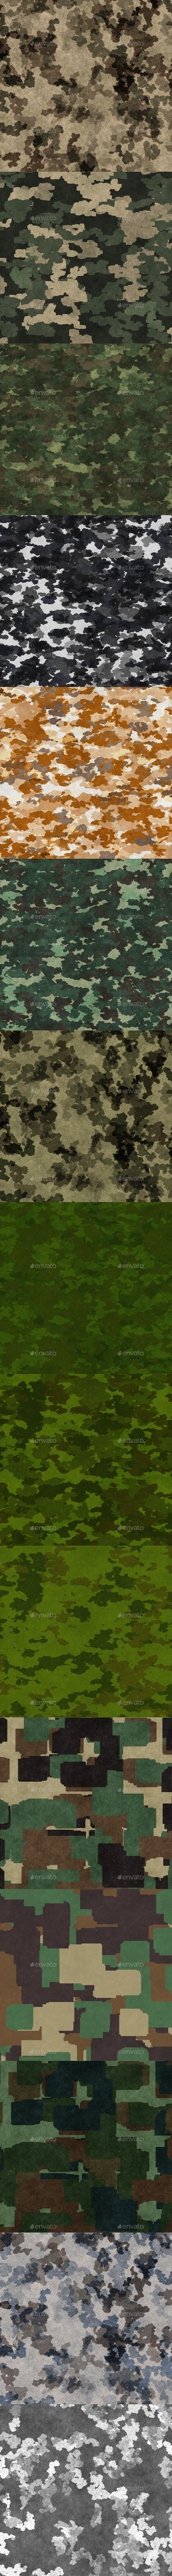 15 Tileable Camouflage Fabric Textures - 3DOcean Item for Sale